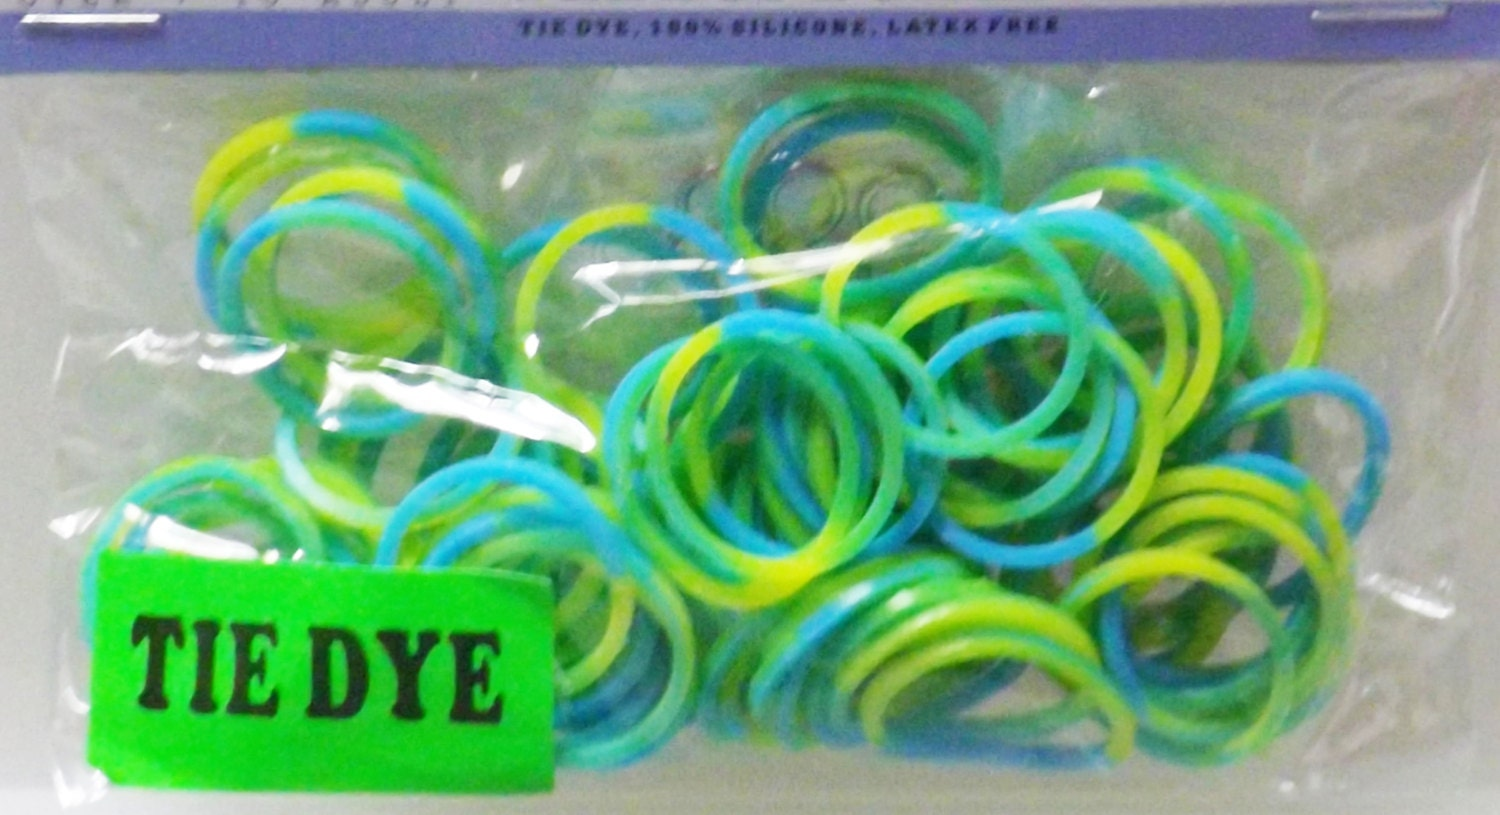 Tie Dye Loom Rubber Bands 100 Count Rubberbands And 4 S Clips